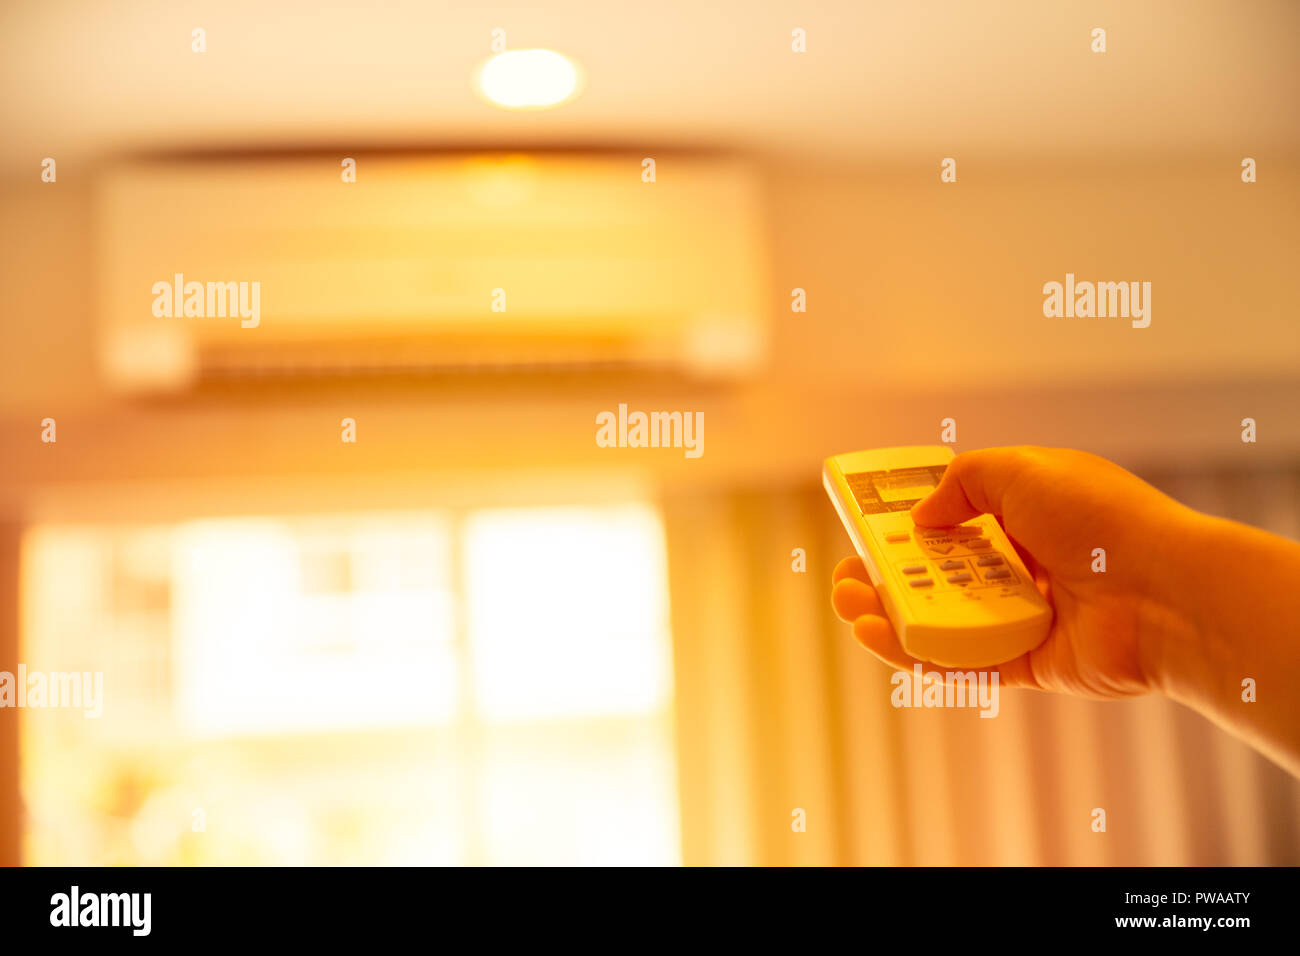 hand adjust AC temperature with remote control to wall type air conditioning home cooling system in very hot summer day - Stock Image